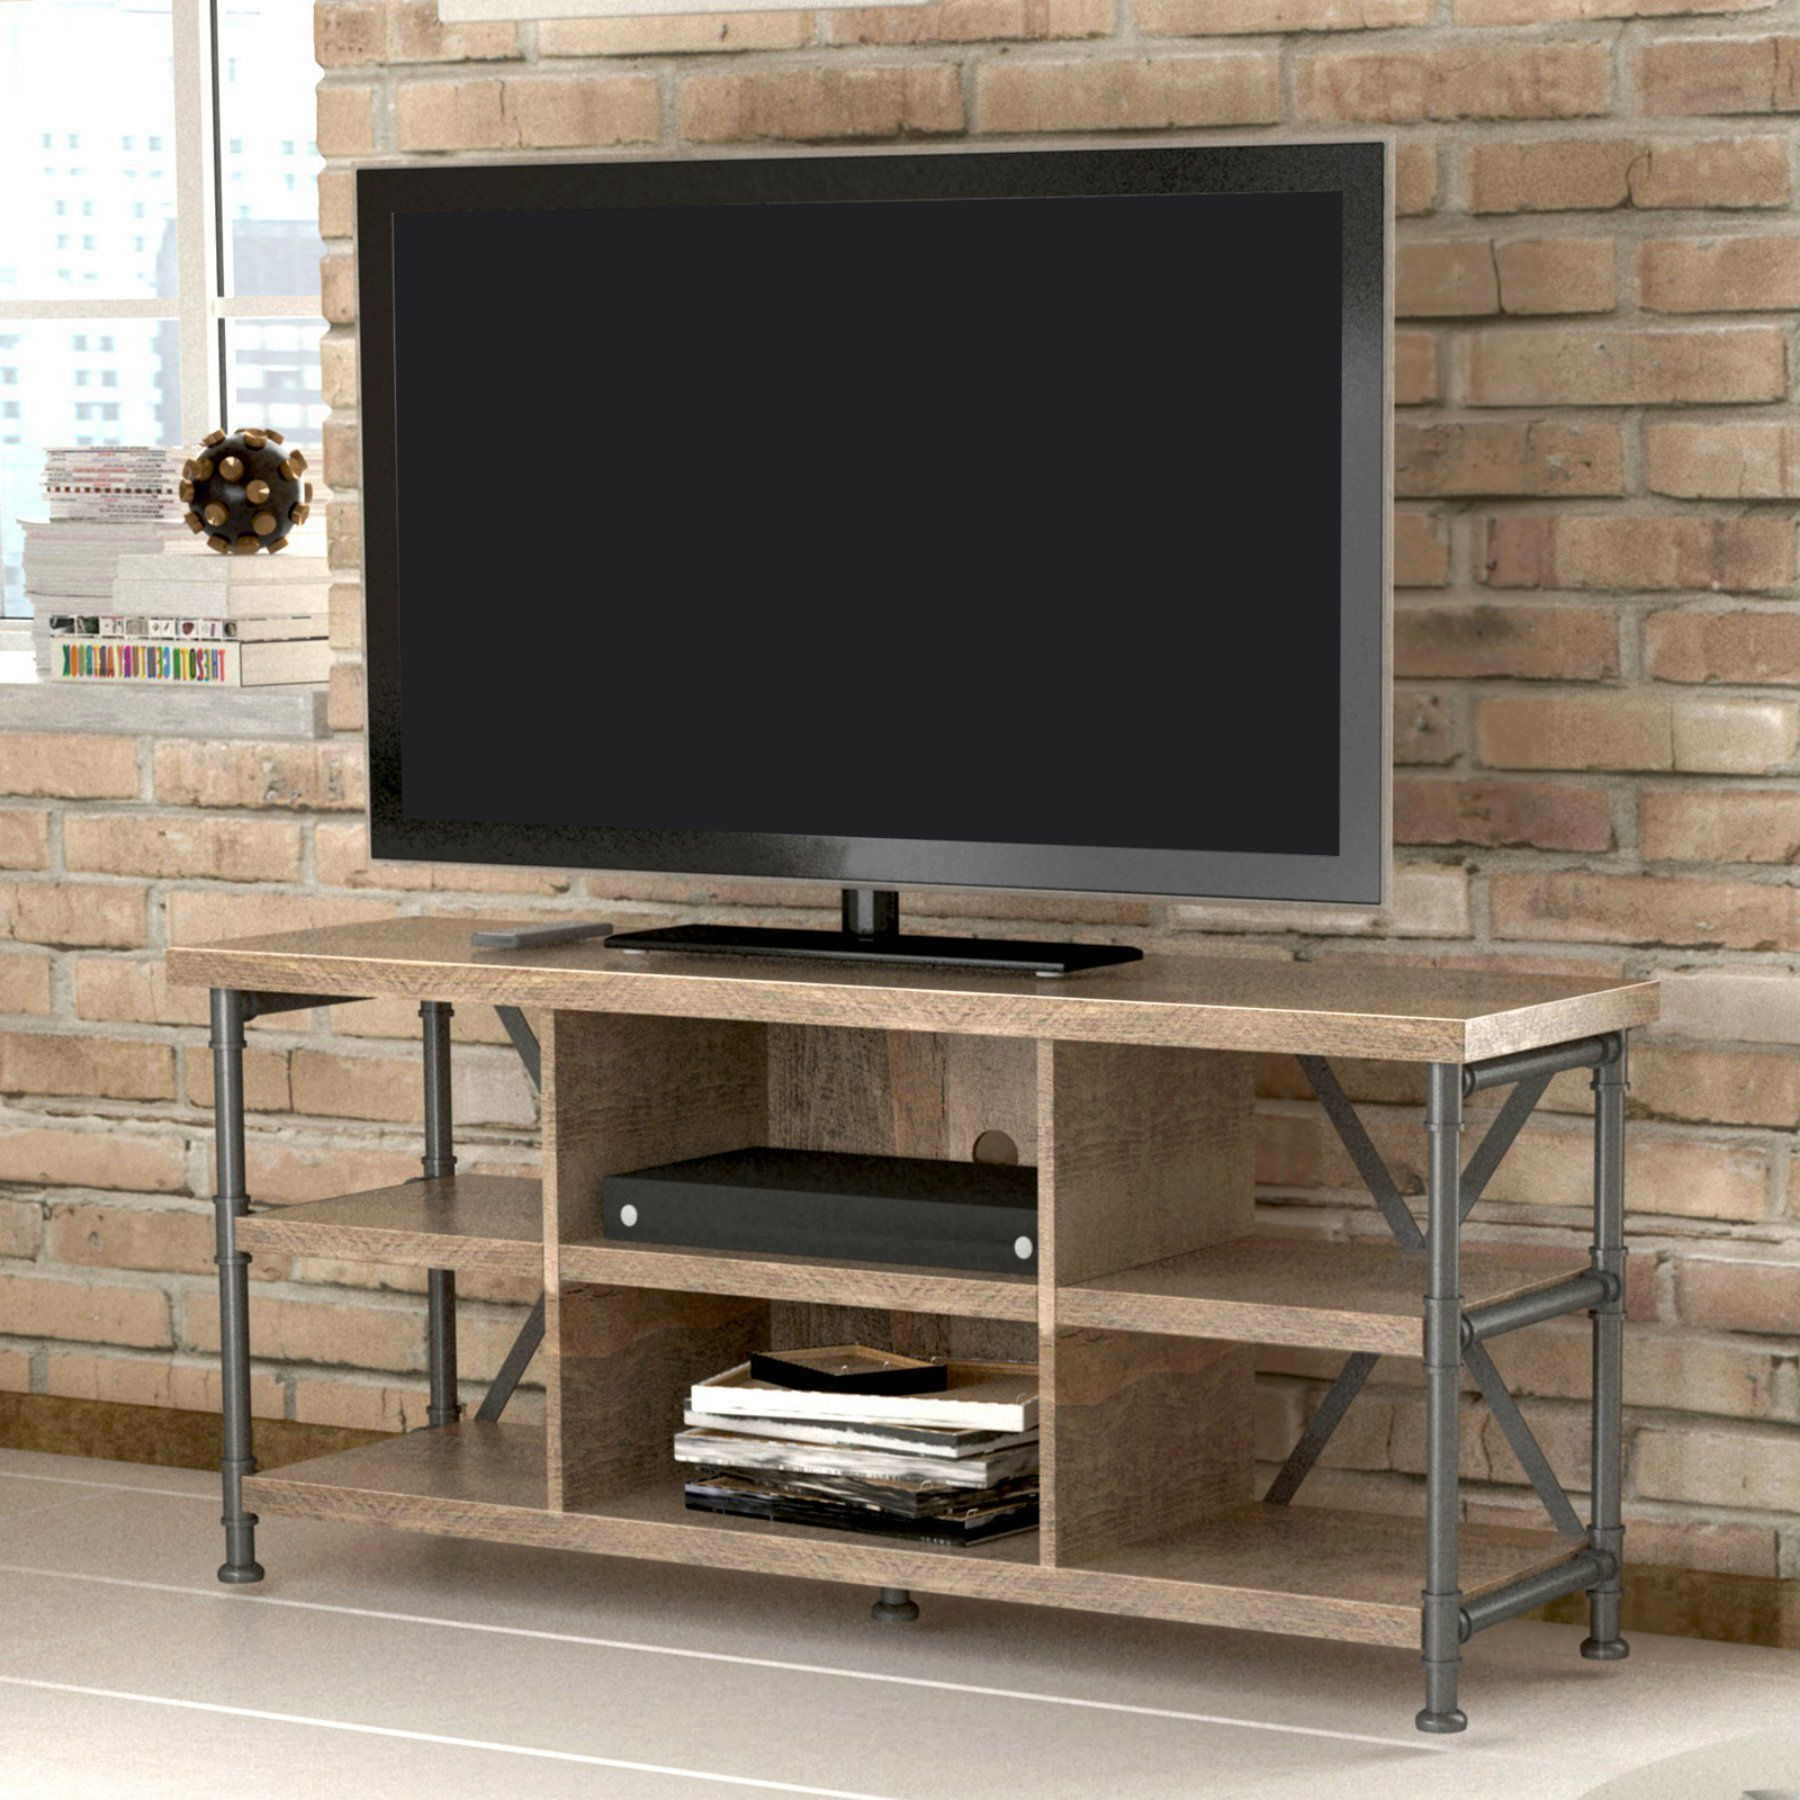 2018 Bello Irondale 54 In. Tv Stand – Autumn Driftwood – Tc54 6096 Pd04 Throughout Kilian Grey 60 Inch Tv Stands (Gallery 3 of 20)